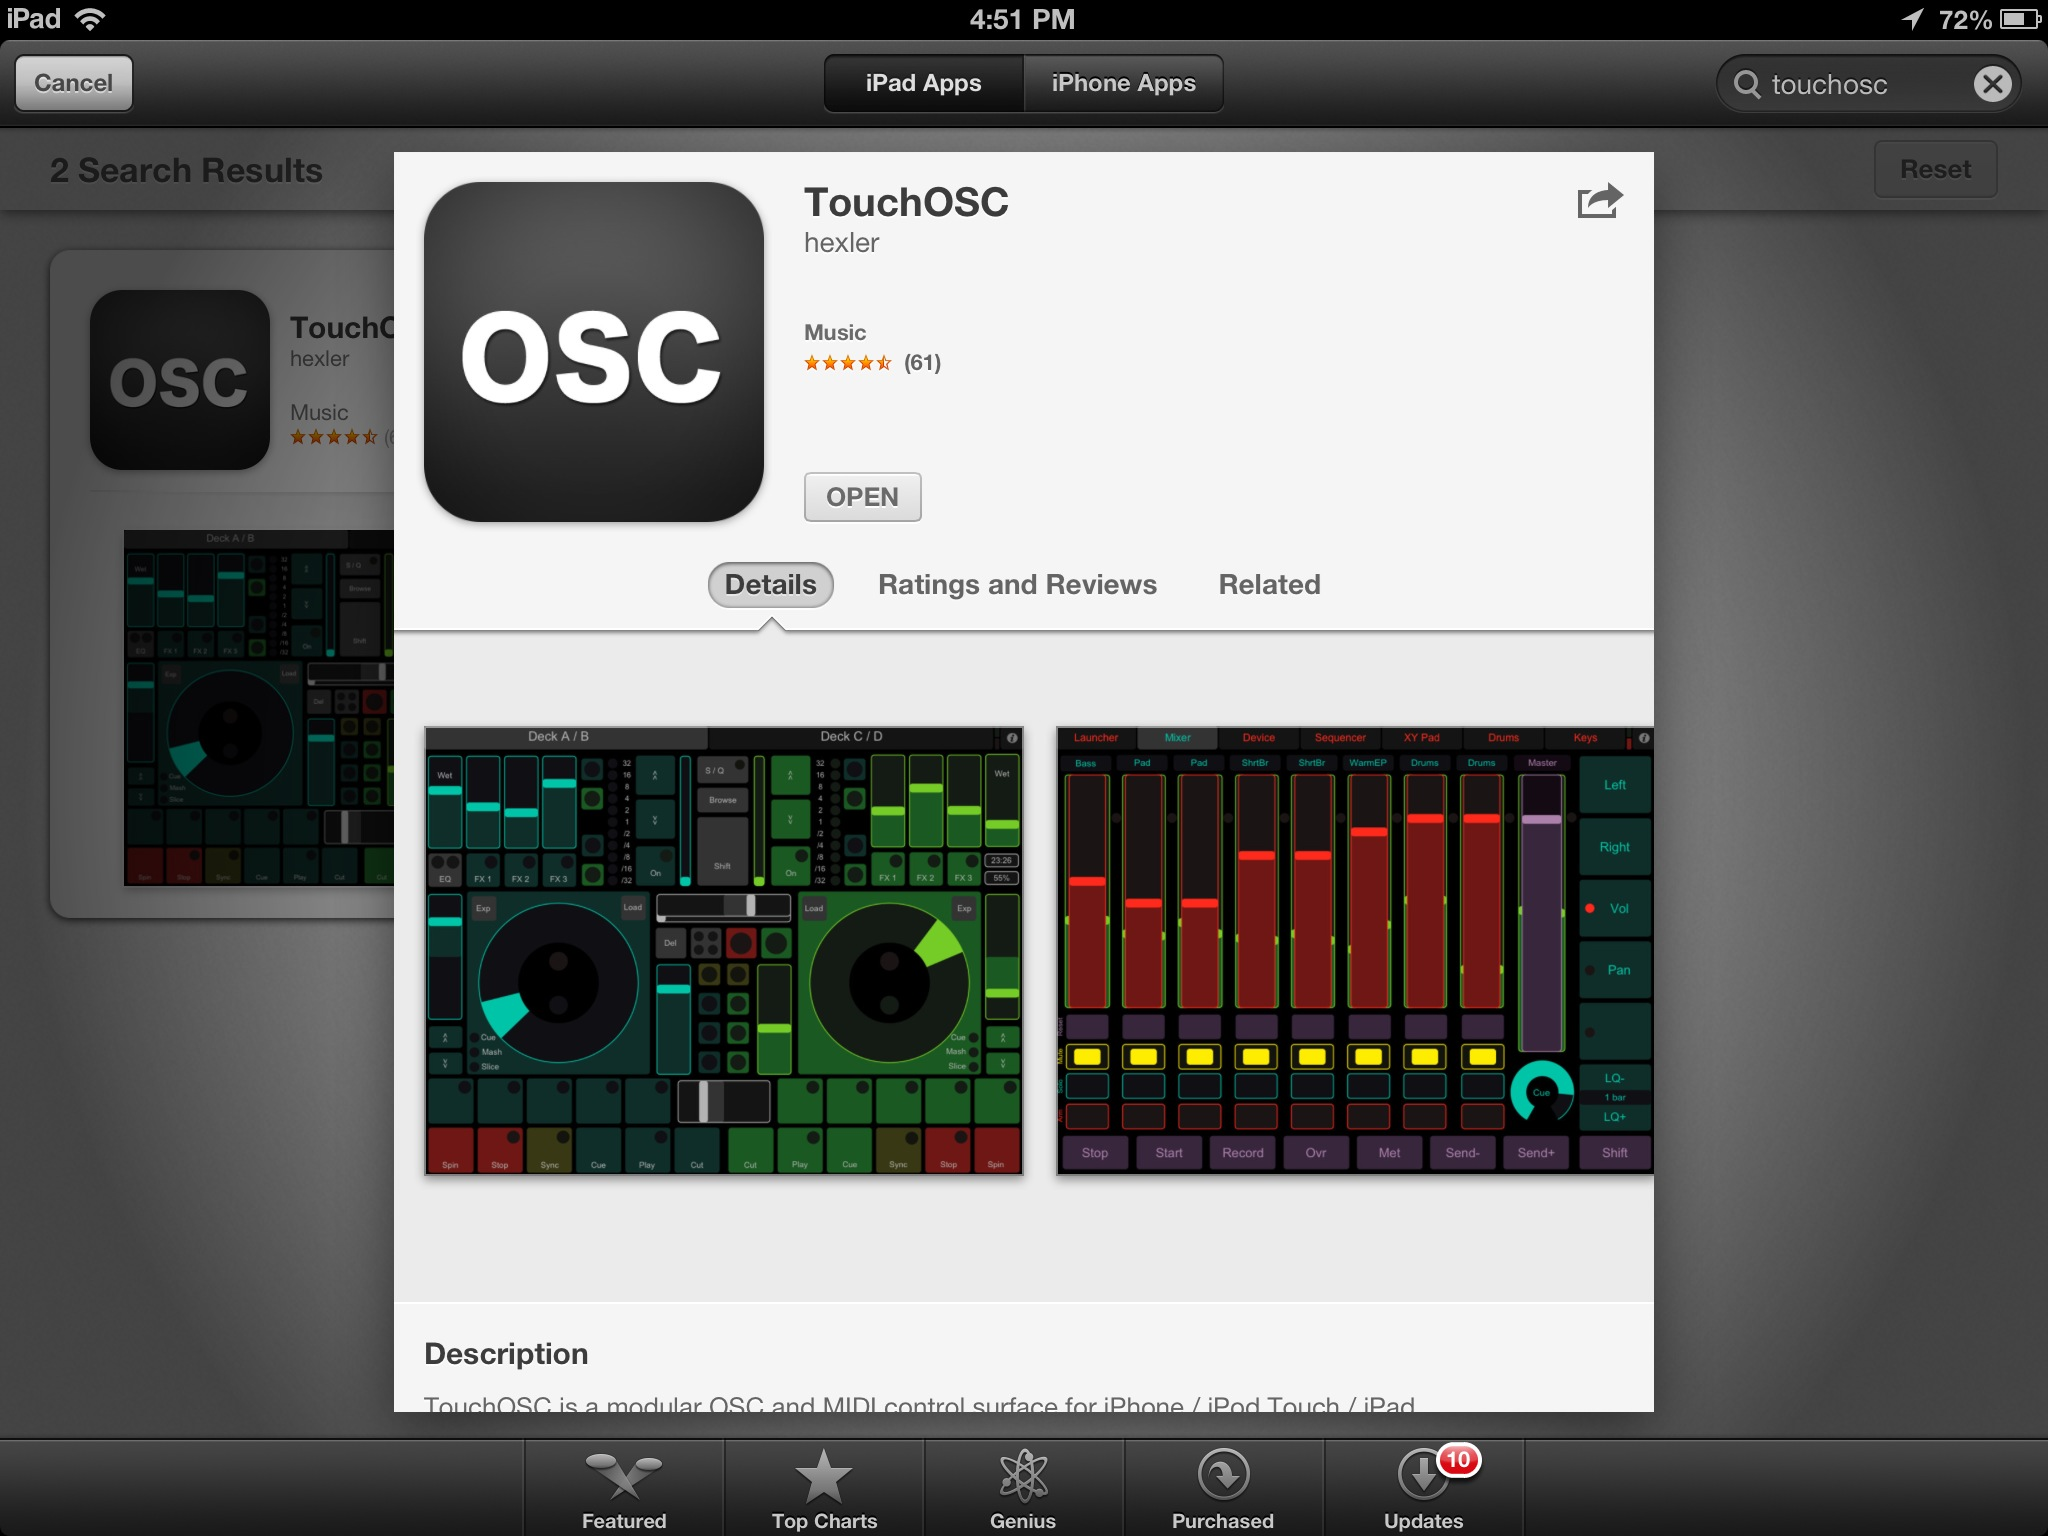 touchosc ipad midi controller apps for music composition 2012 11 03 sml screenshots. Black Bedroom Furniture Sets. Home Design Ideas